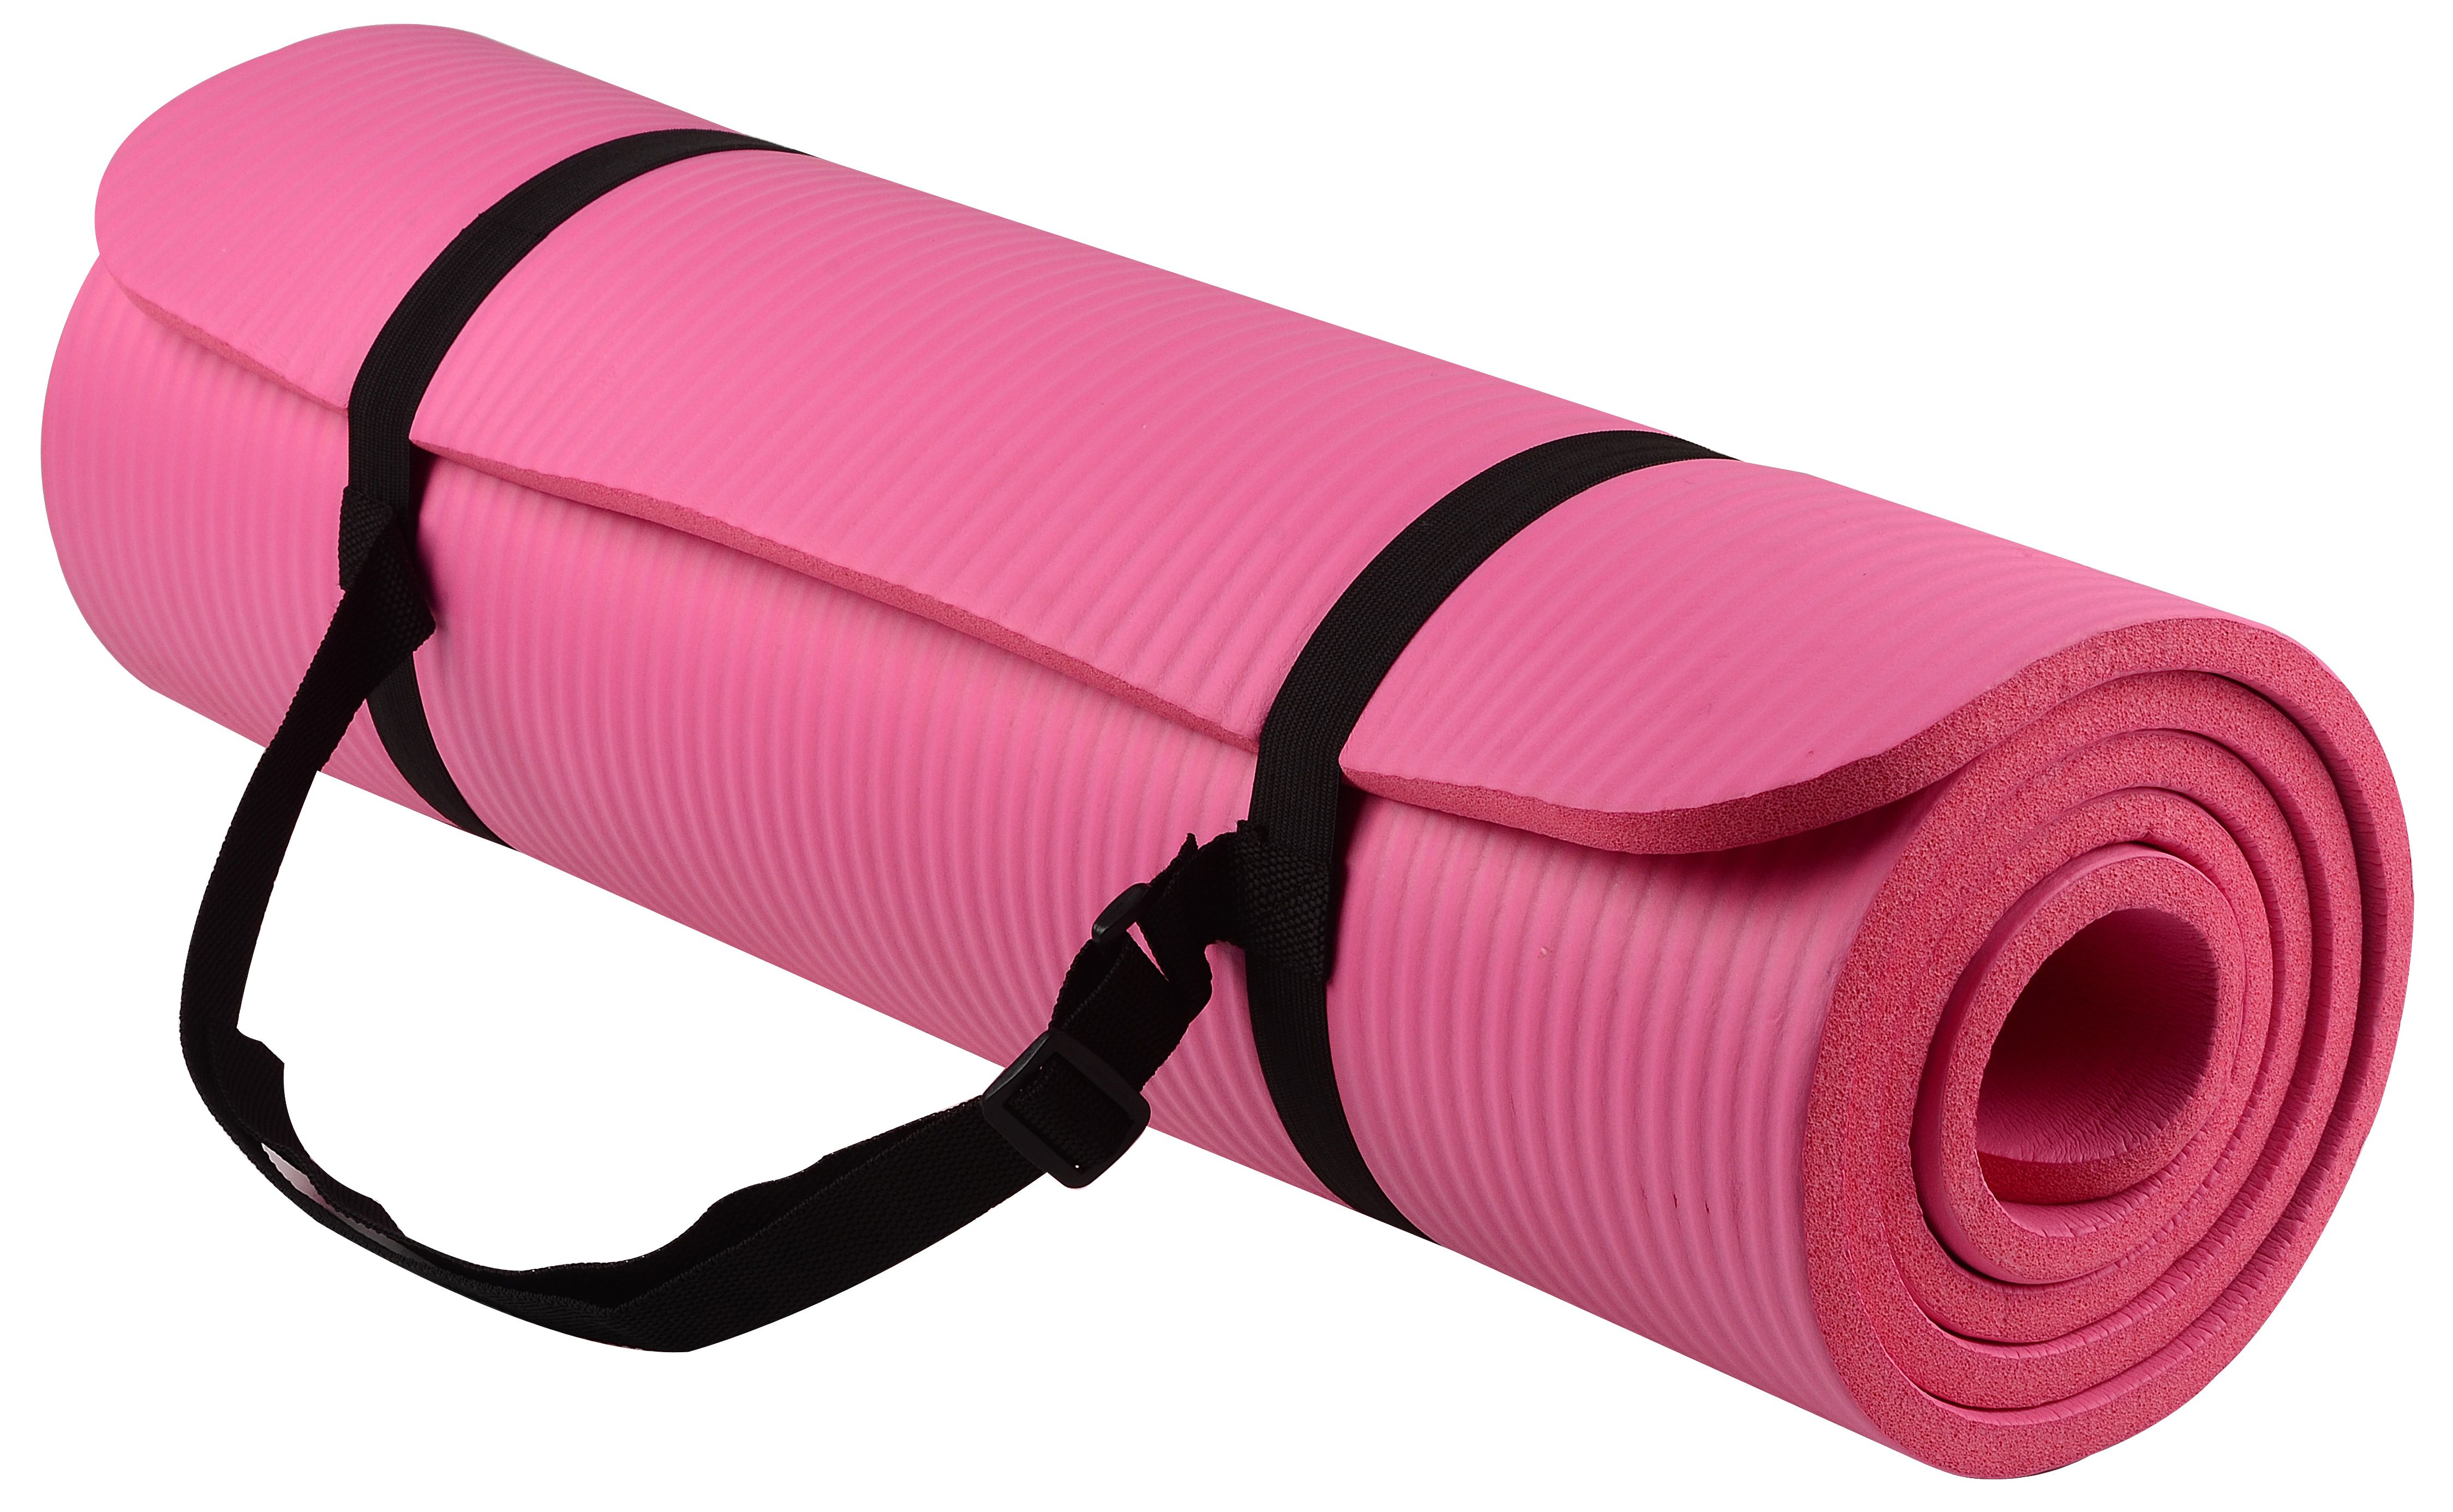 Balancefrom All-Purpose 1 2-Inch Exercise Yoga Mat Anti-Tear with Carrying Strap by Yoga Videos